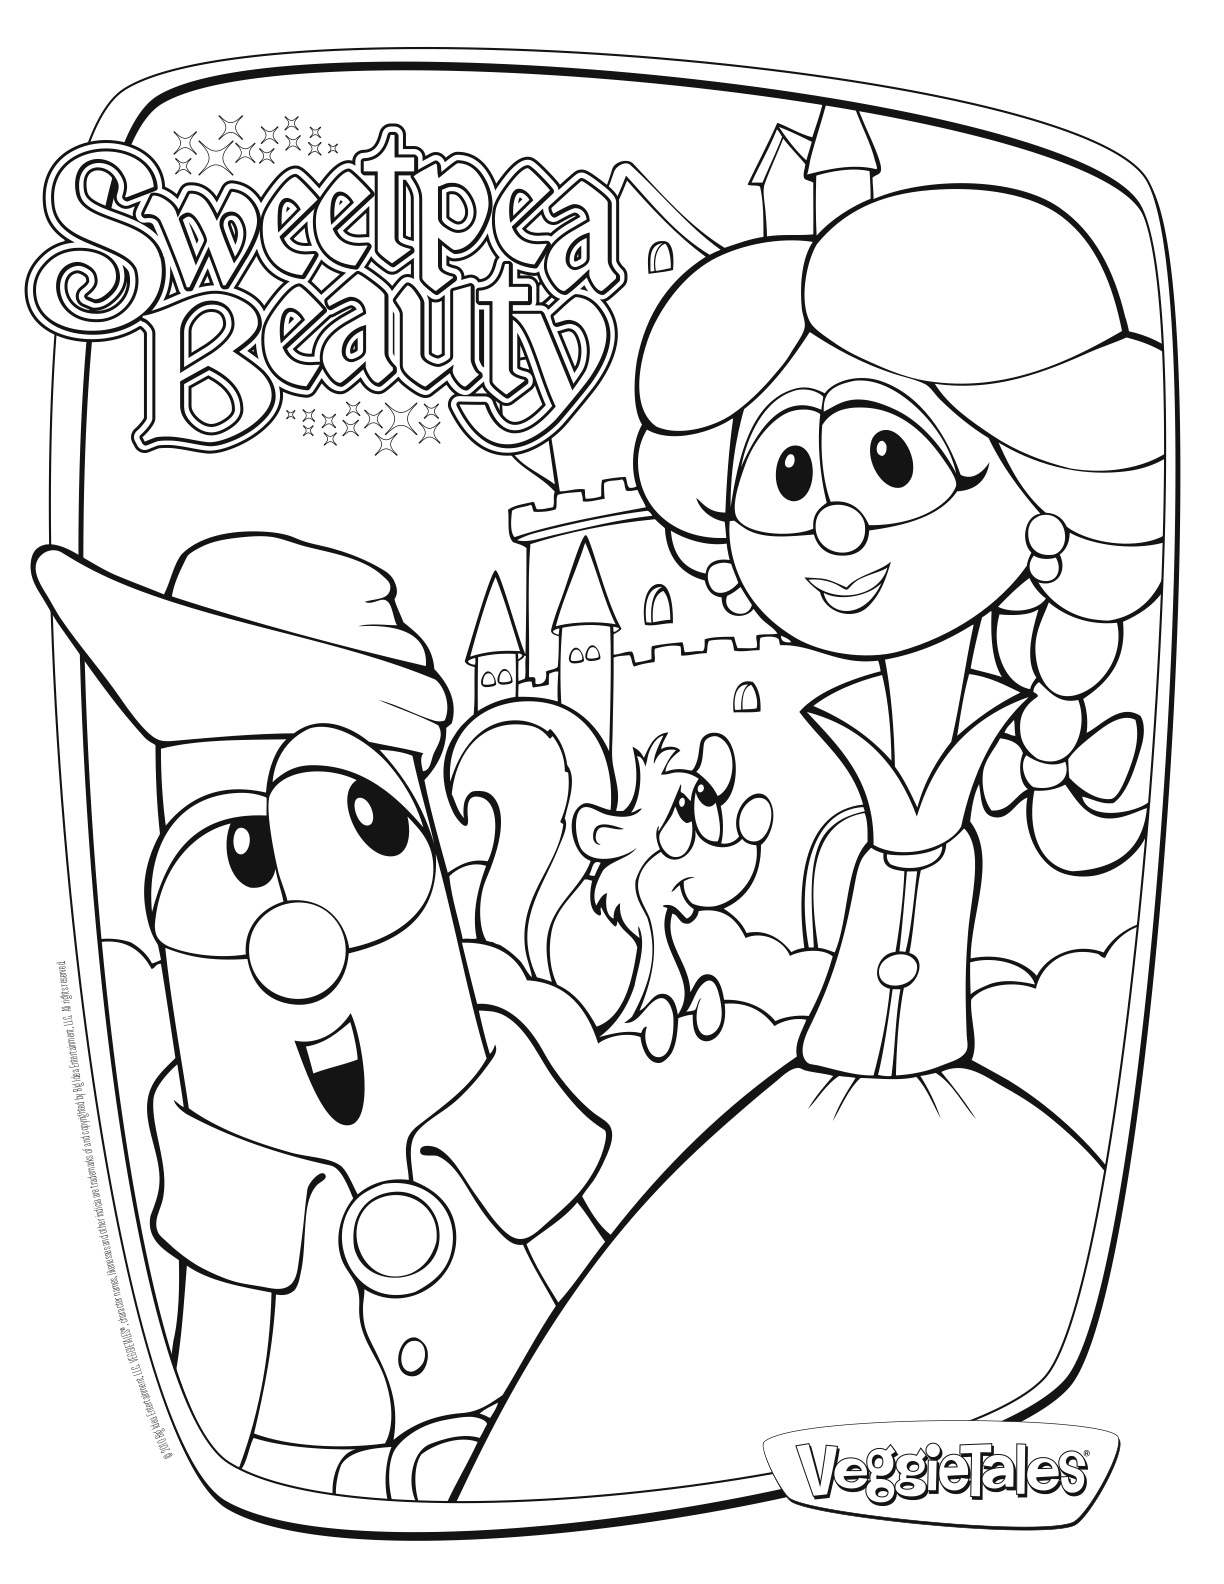 1224x1584 Duke The Great Pie War Bible Story Coloring Pages For To Print